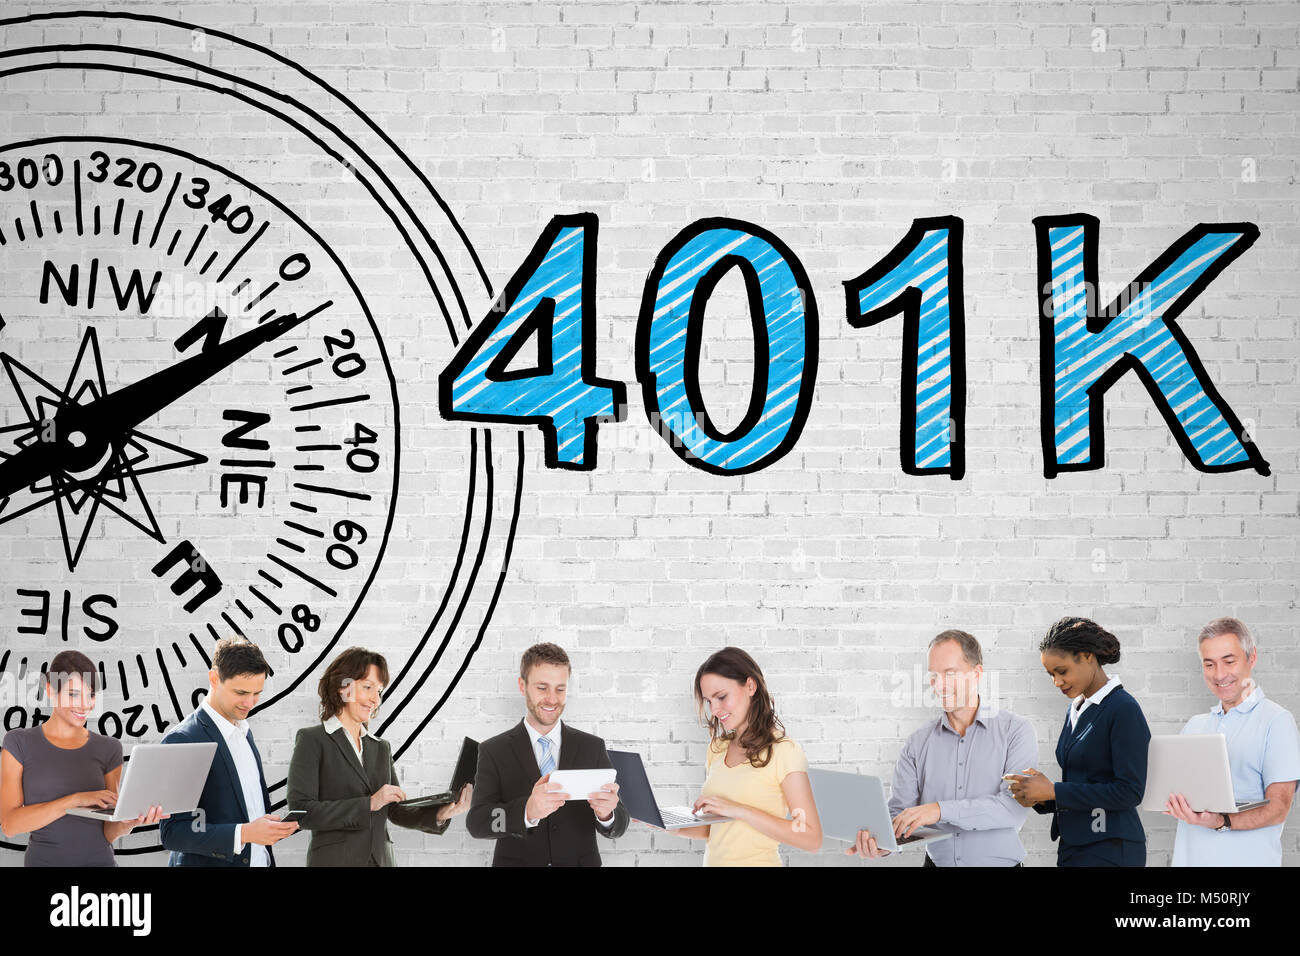 Photo Of People Standing In Front Of 401k Pension Plan - Stock Image